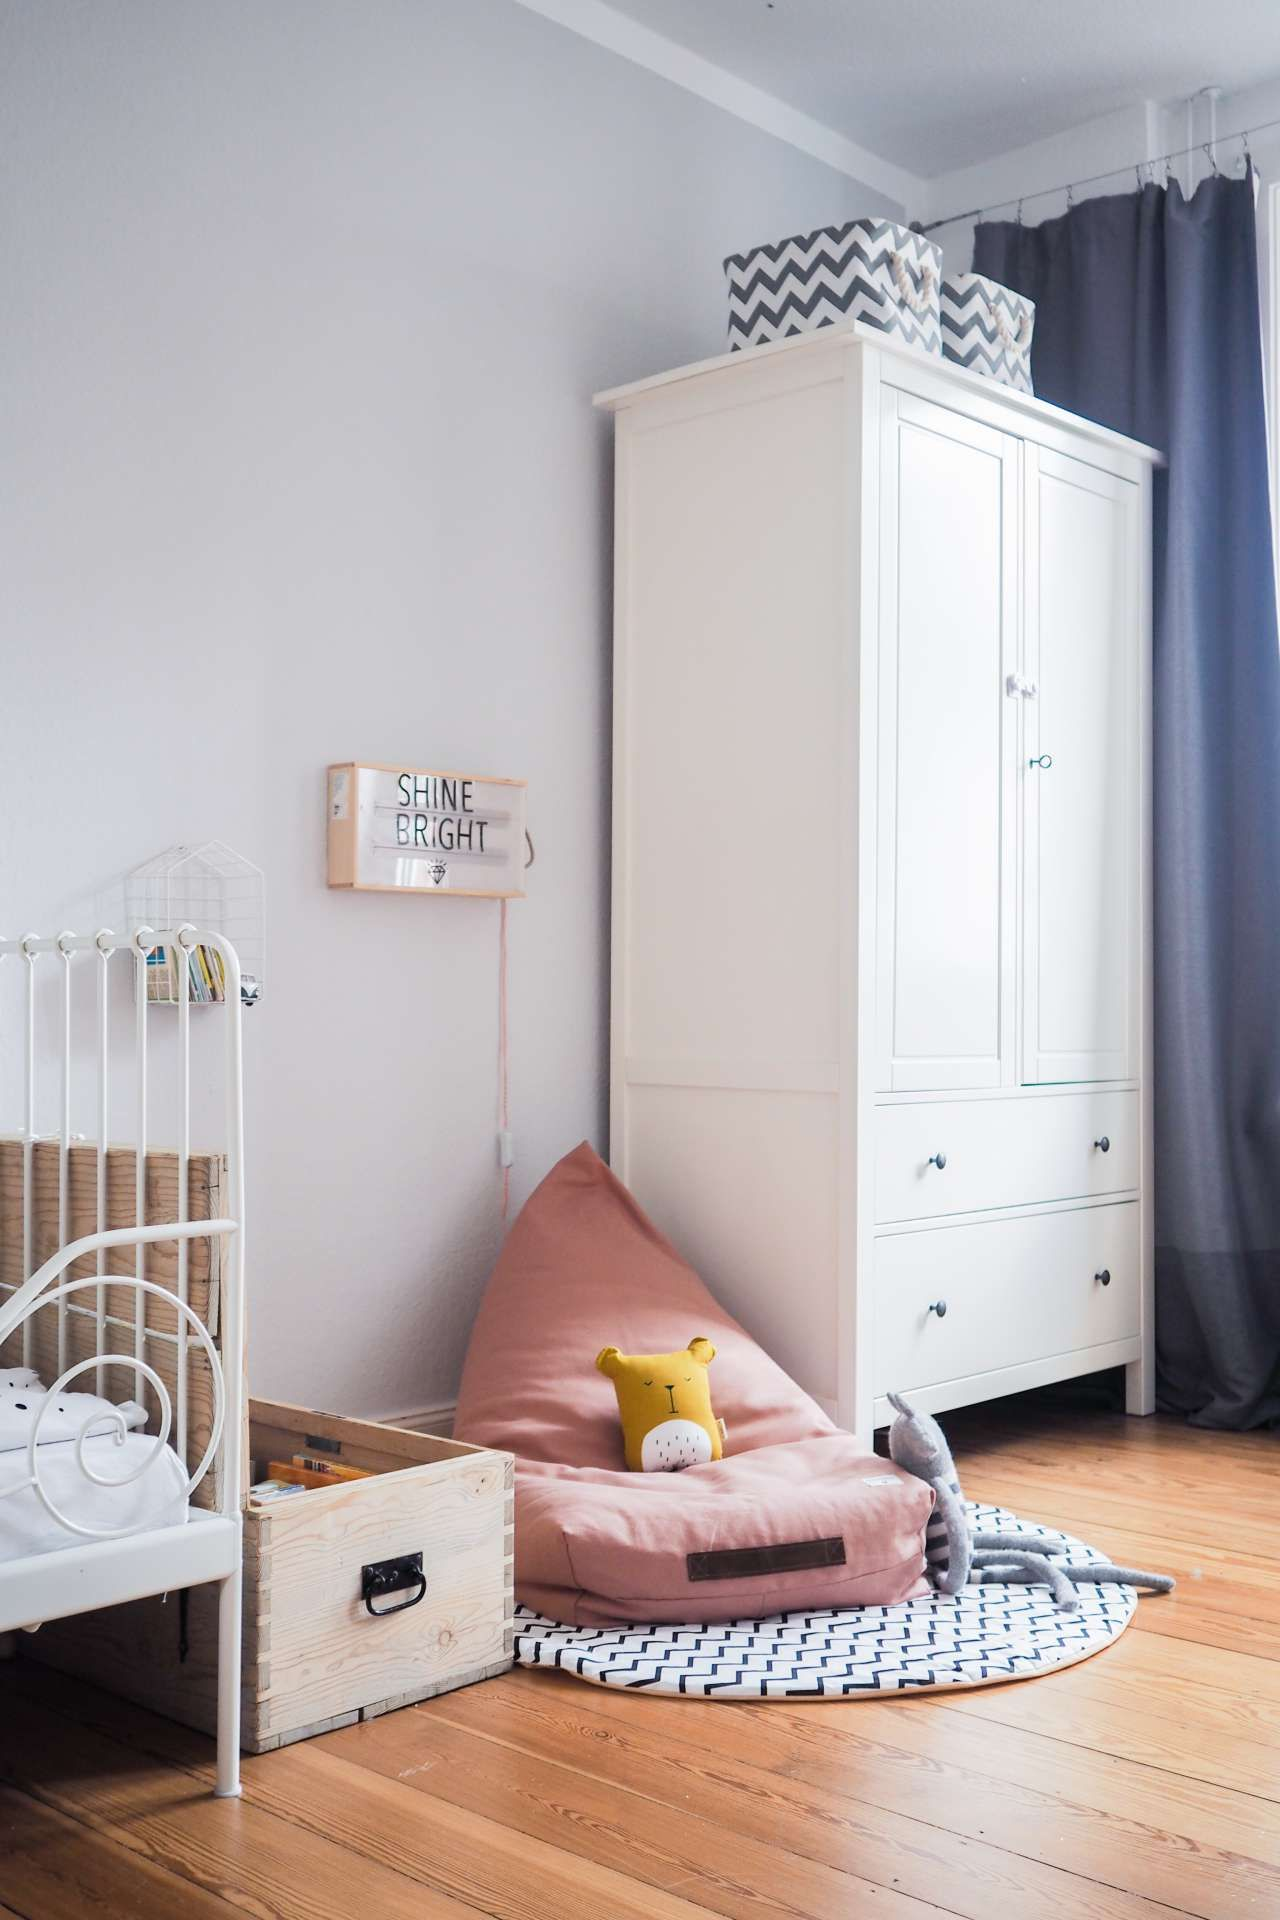 unser zuhause die neue leseecke im kinderzimmer kuschelecke kinderzimmer nachhaltige. Black Bedroom Furniture Sets. Home Design Ideas